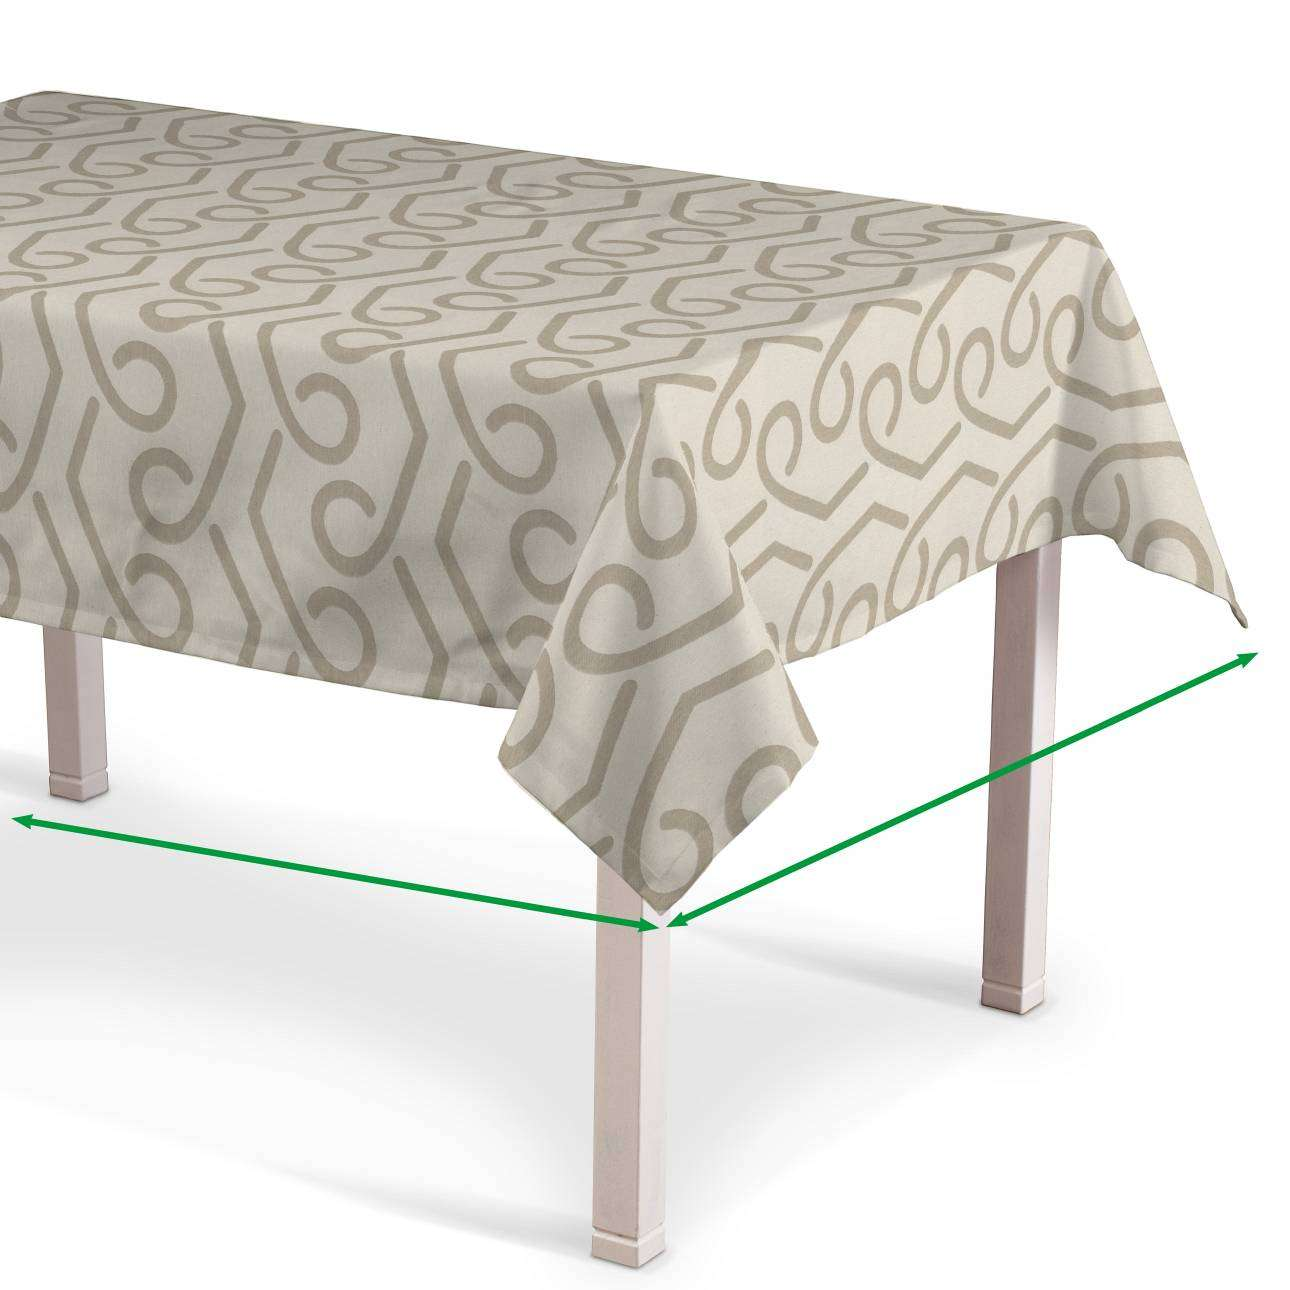 Rectangular tablecloth in collection Rustica, fabric: 140-85